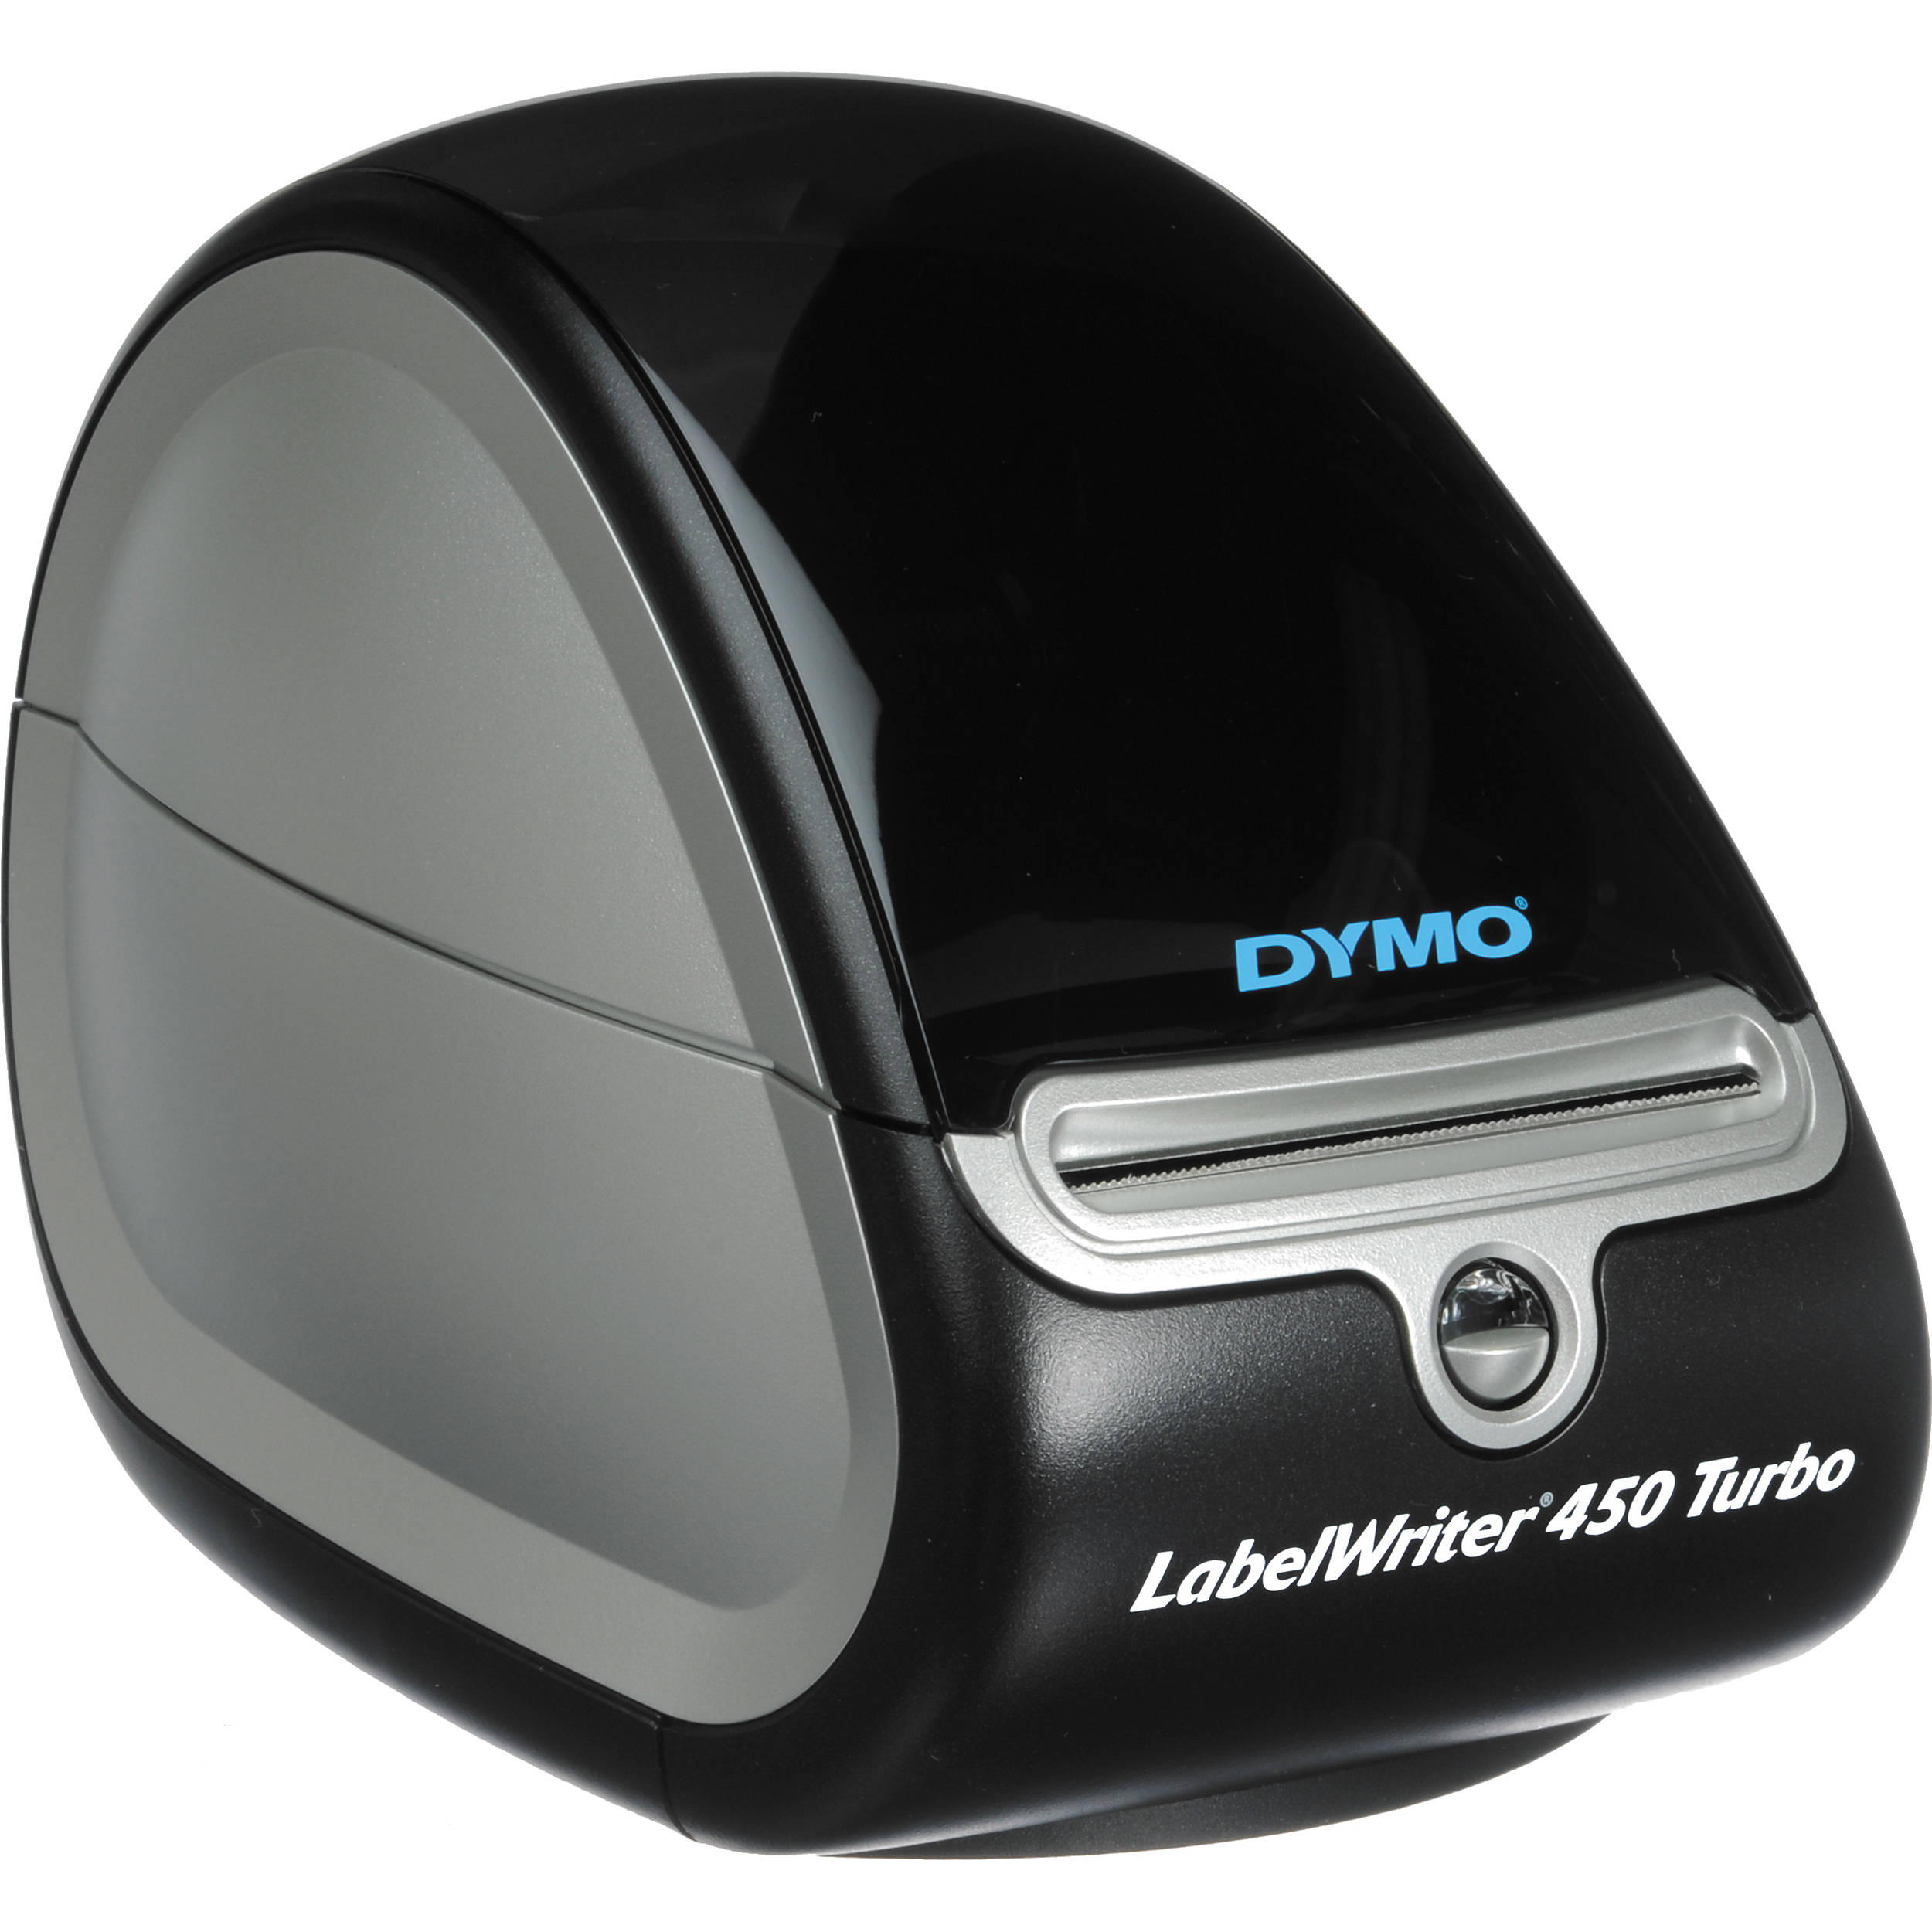 Dymo labelwriter 450 turbo usb label printer 1752265 bh photo for Dymo custom labels